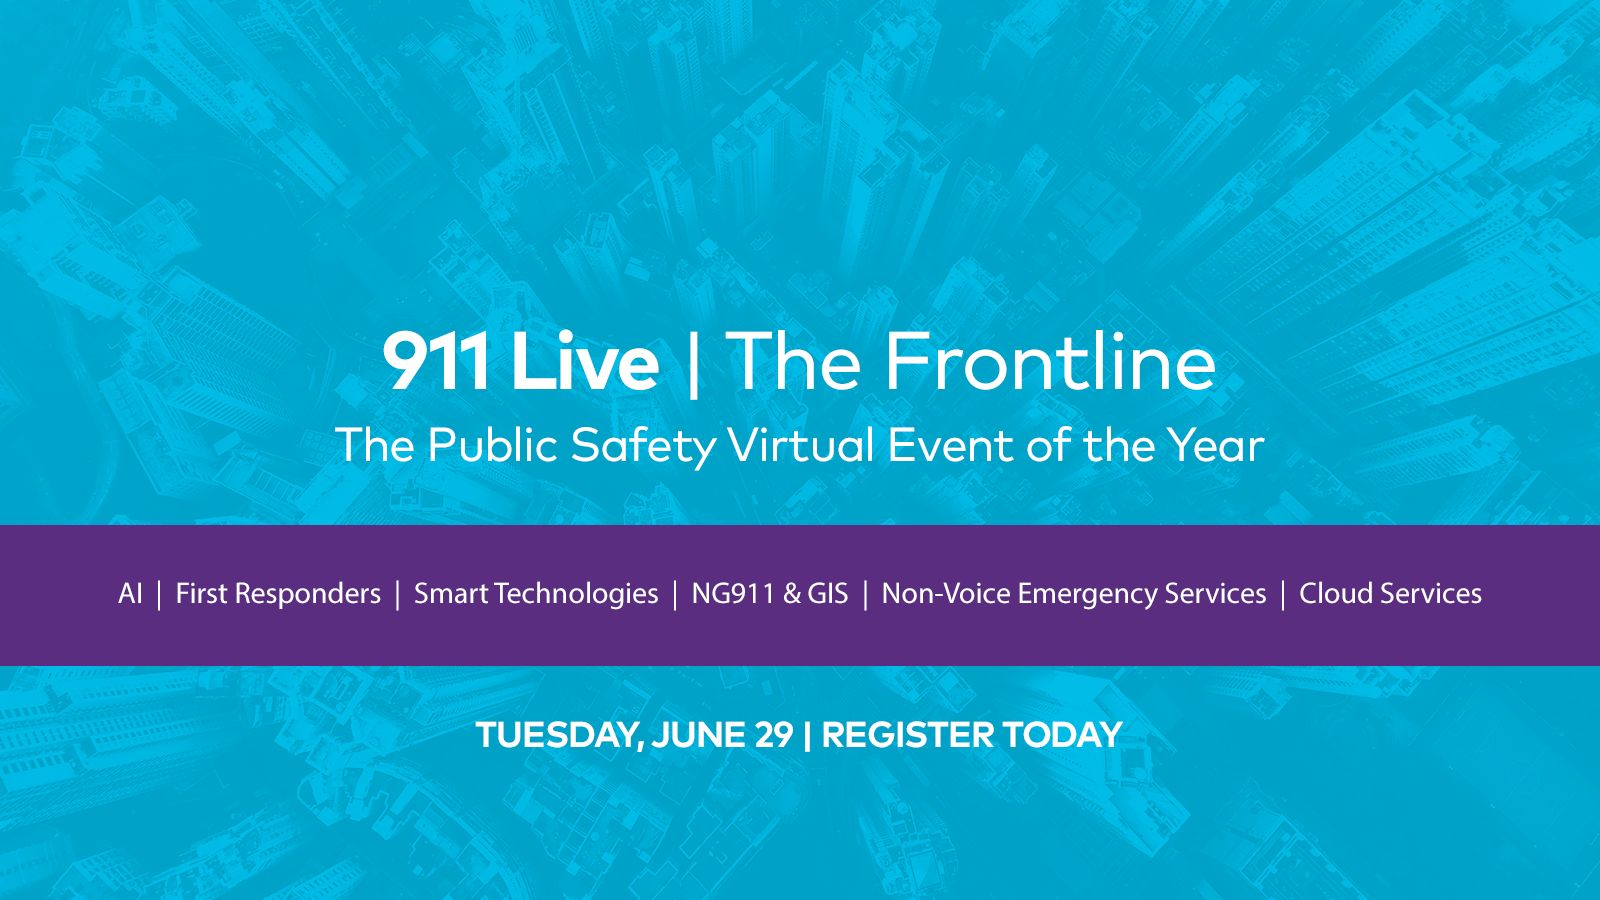 911 Live | The Frontline: 911 Live | The Frontline